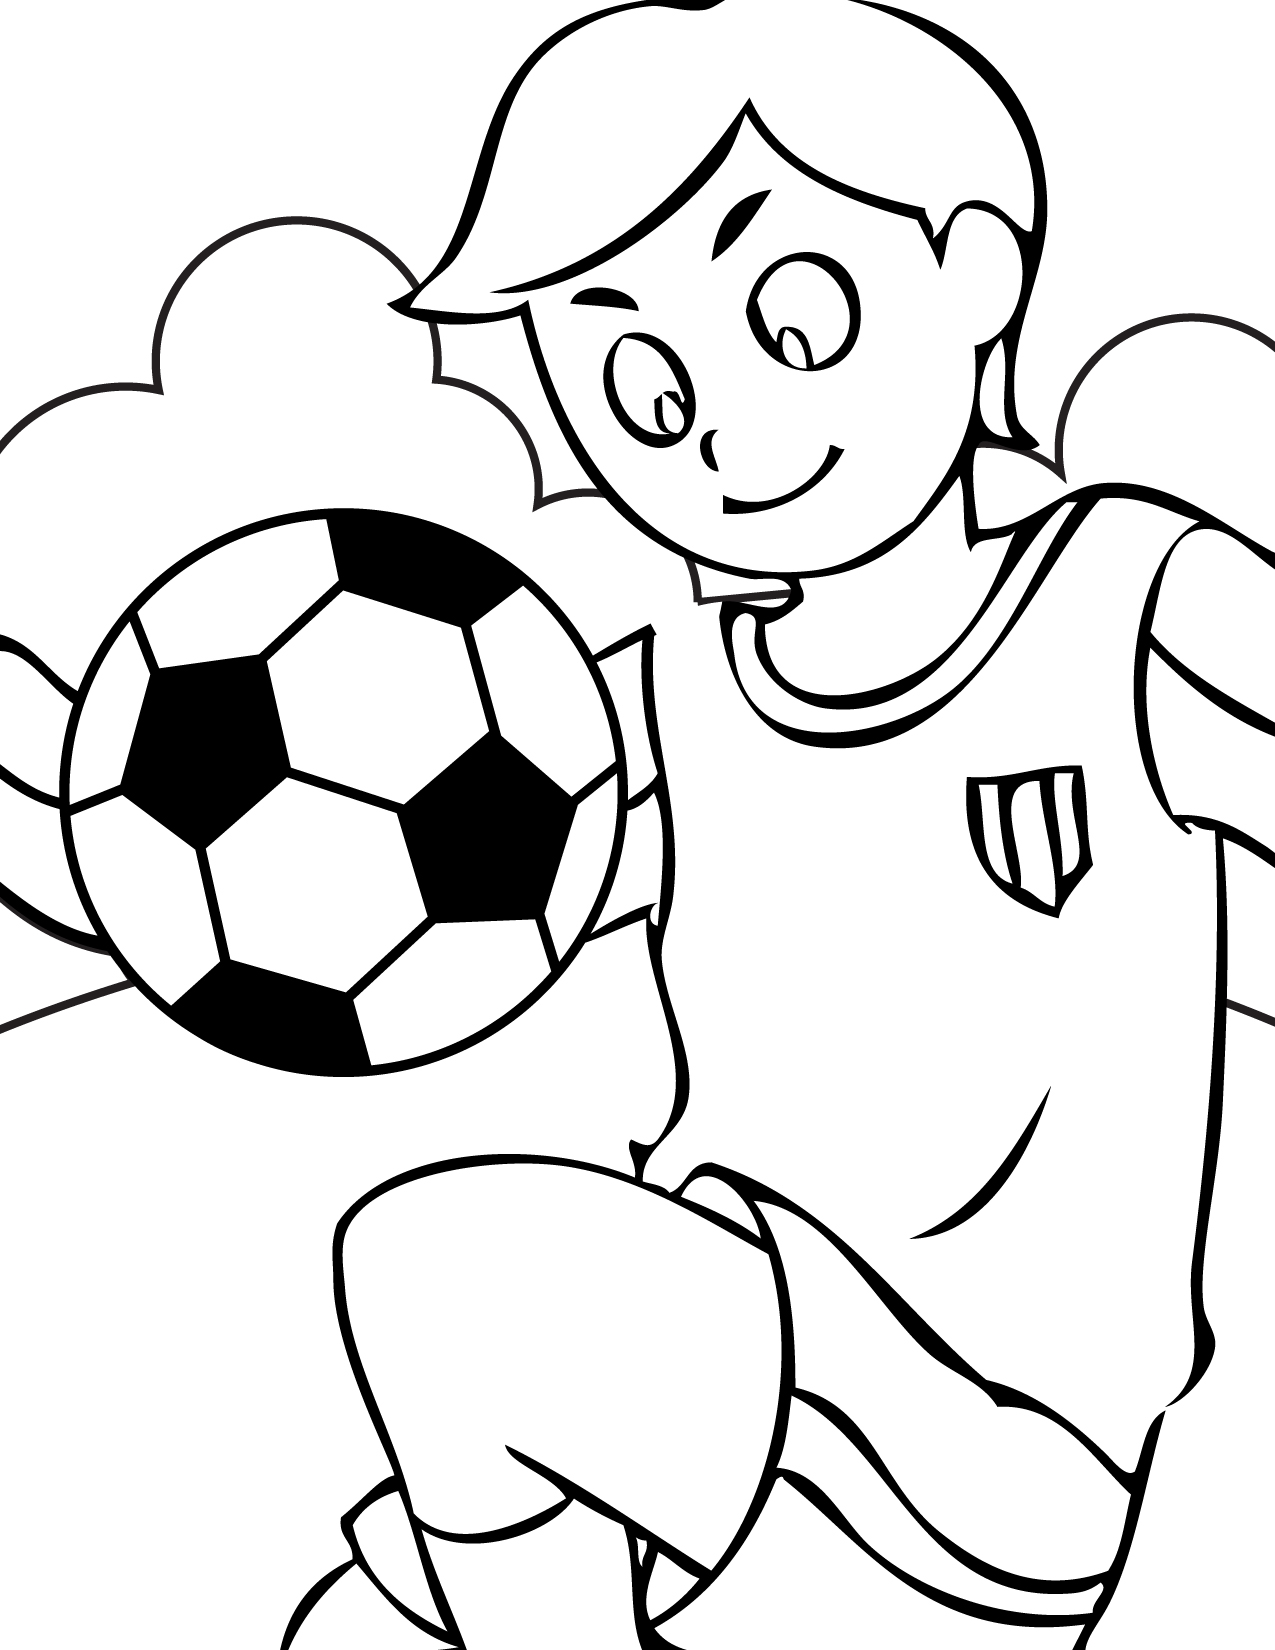 1275x1650 Sports Coloring Pages For Boys Printable